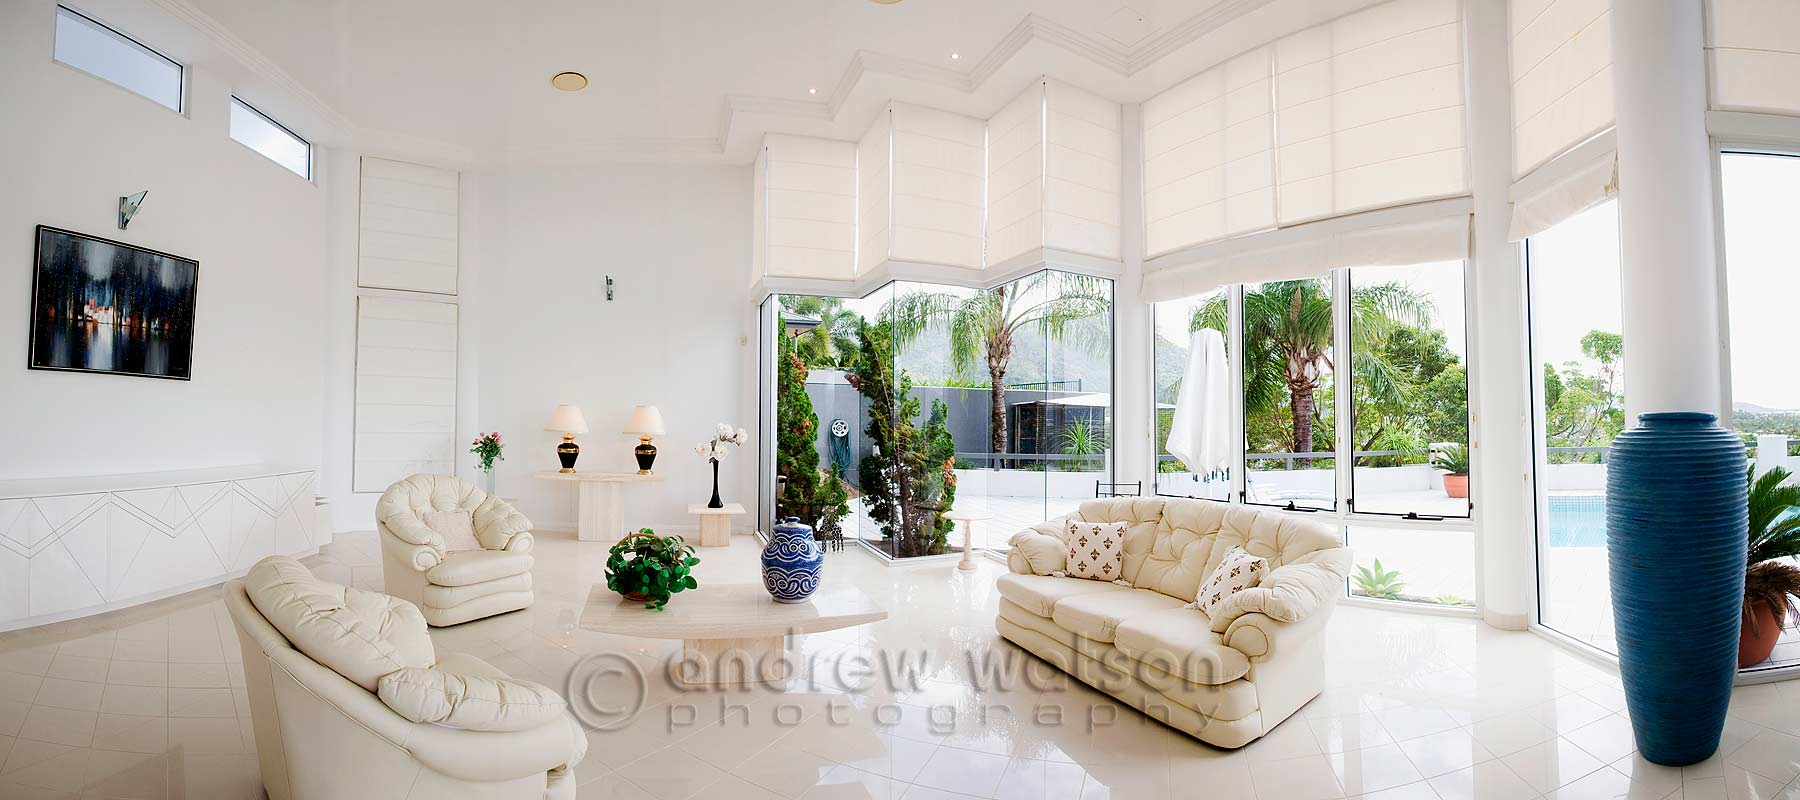 Interiors photography - Residential home, Cairns